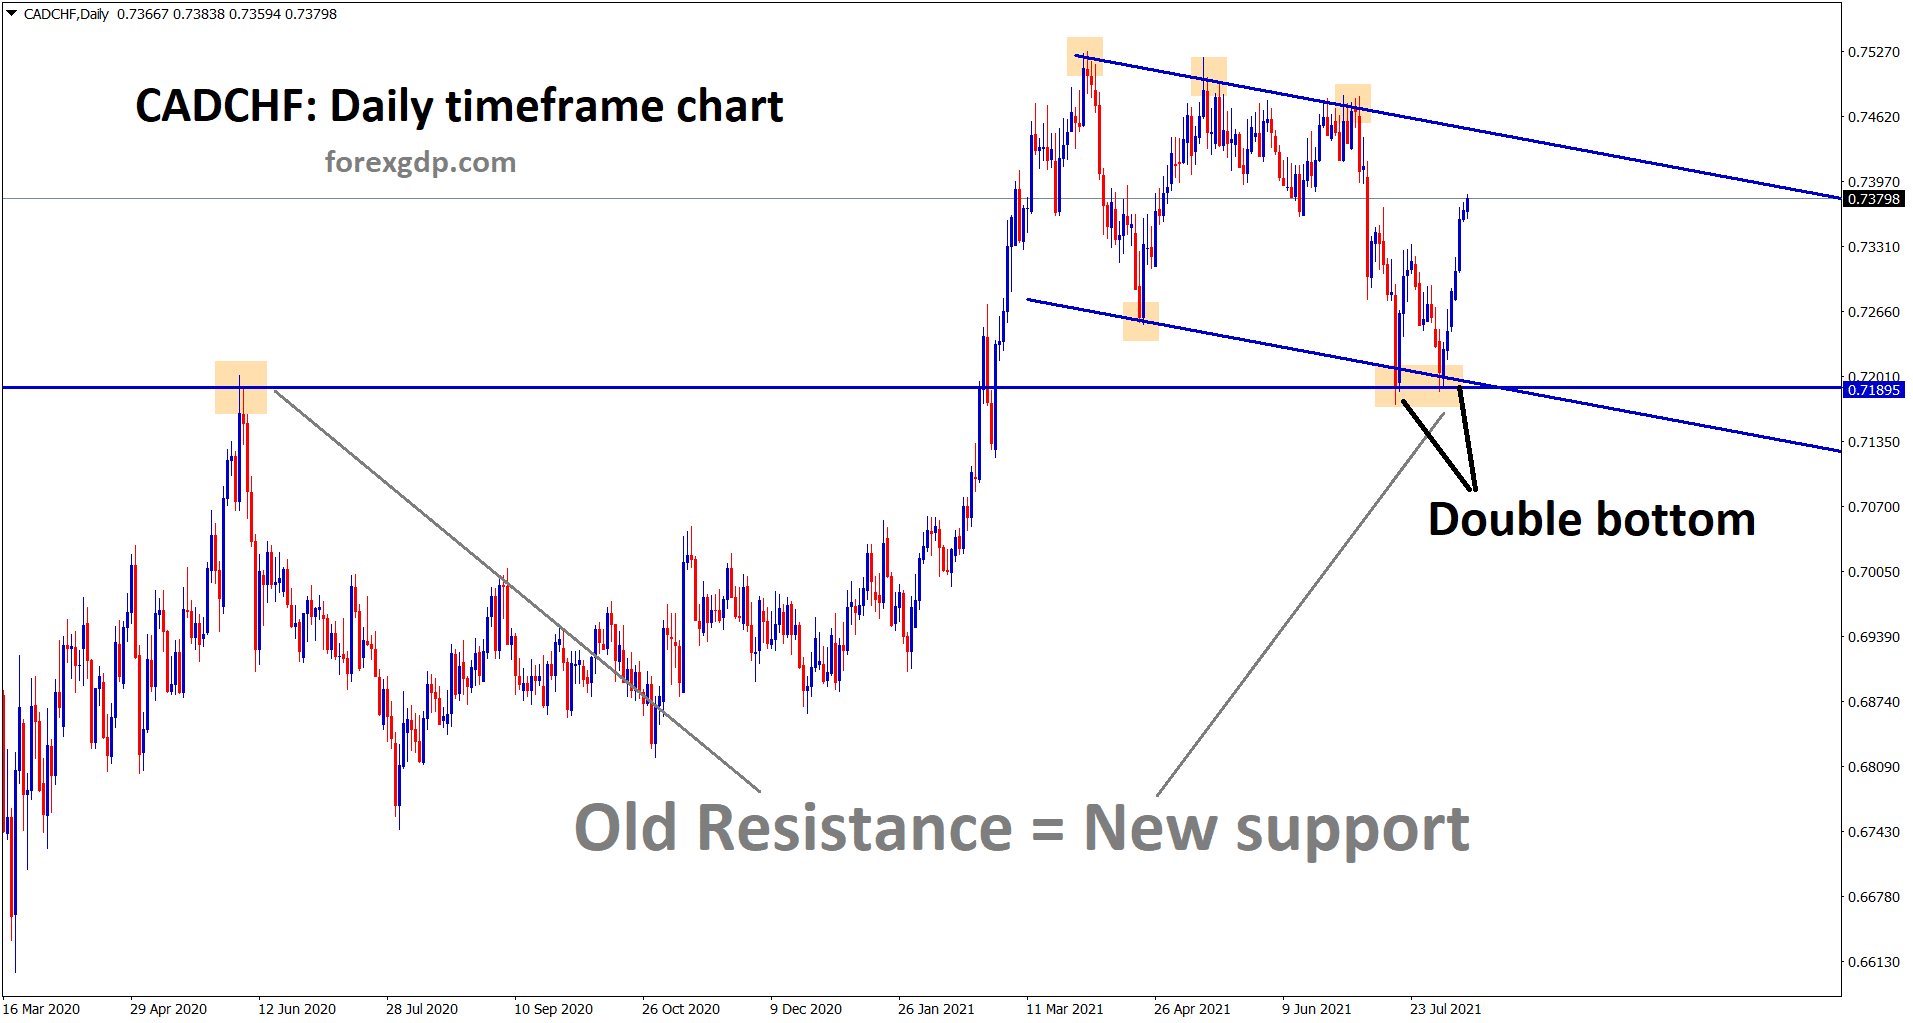 CADCHF is moving up faster after creating a double bottom and retest at the previous resistance area